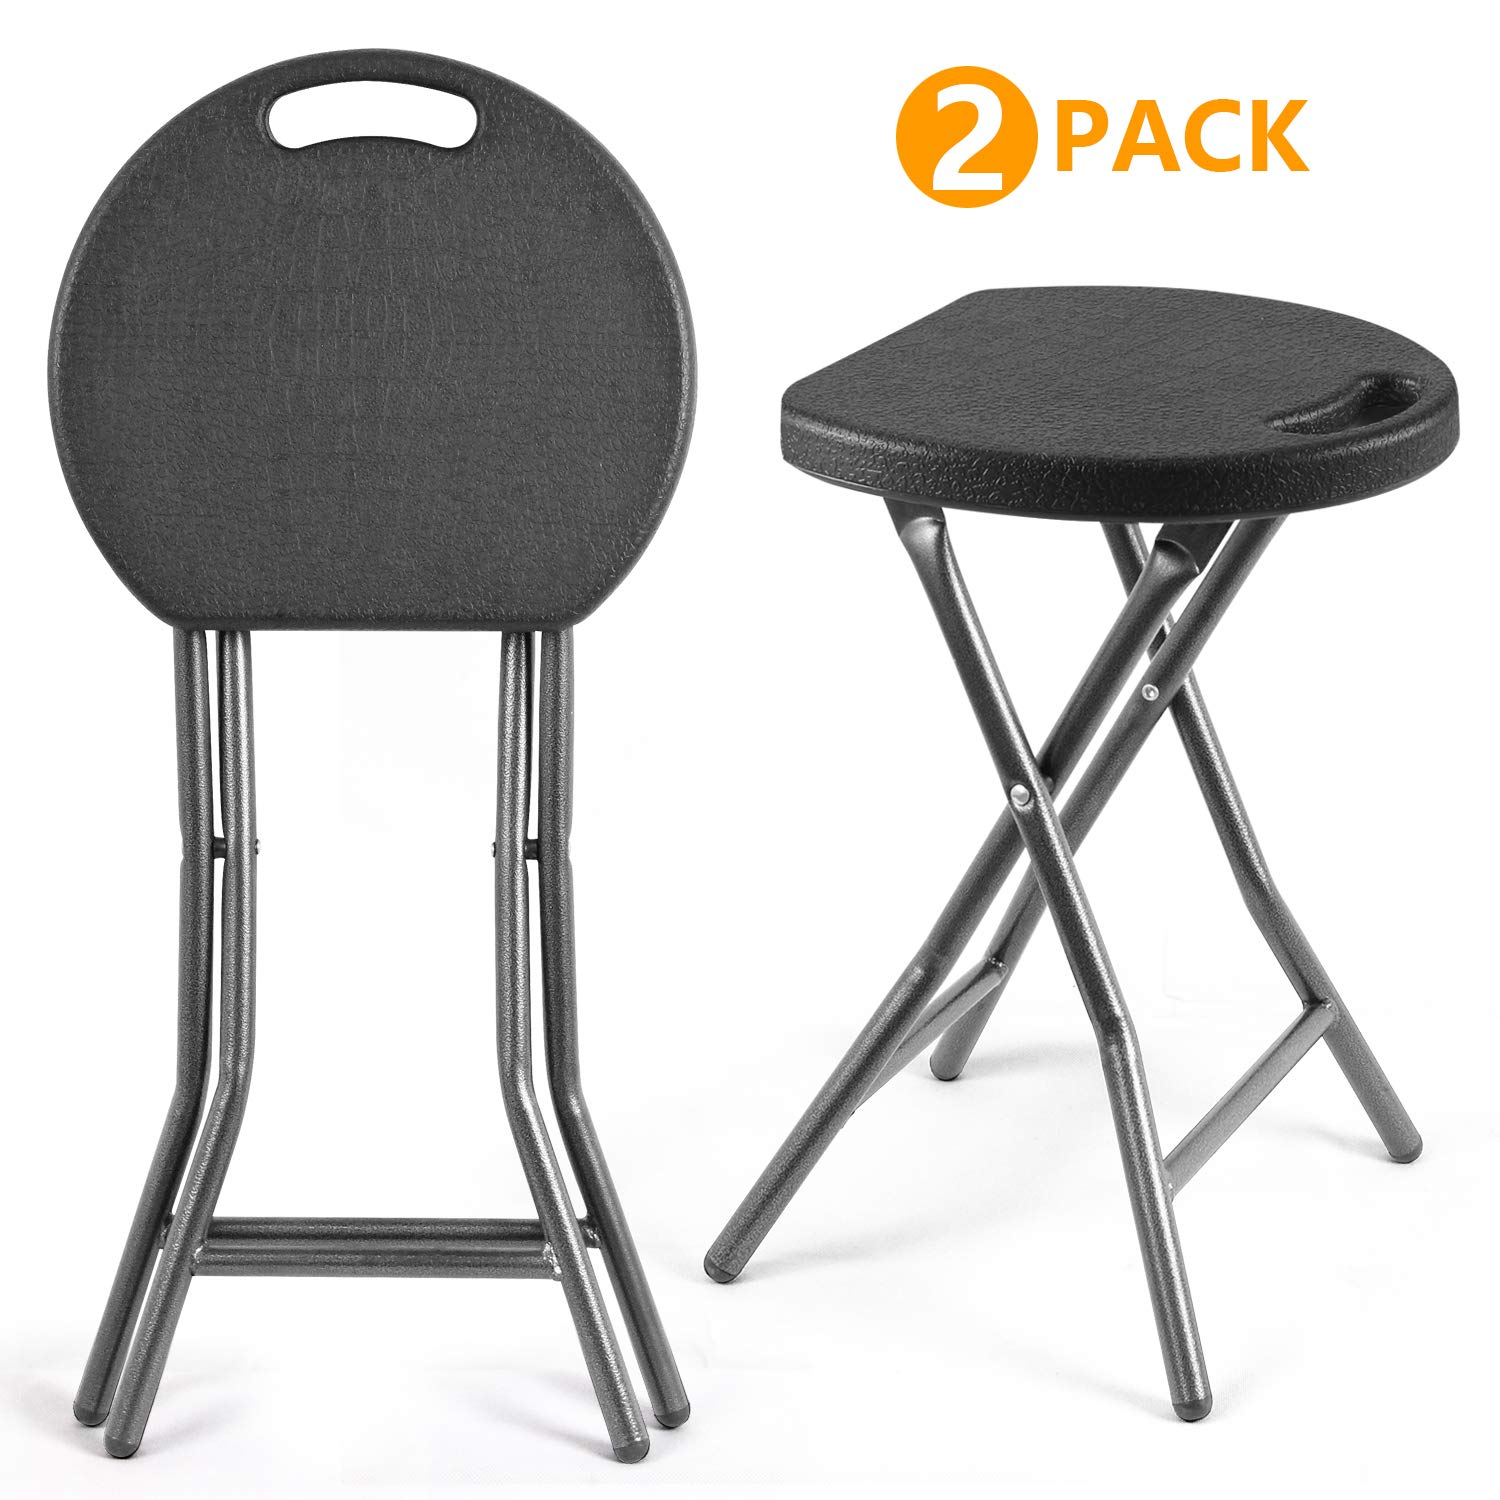 5Rcom Portable Stools Folding Lightweight Set of 2,Plastic Foldable Stool with Heavy Duty Steel Frame Legs,300lbs Capacity/18.1 inch Height/2 Pack,Black by 5Rcom